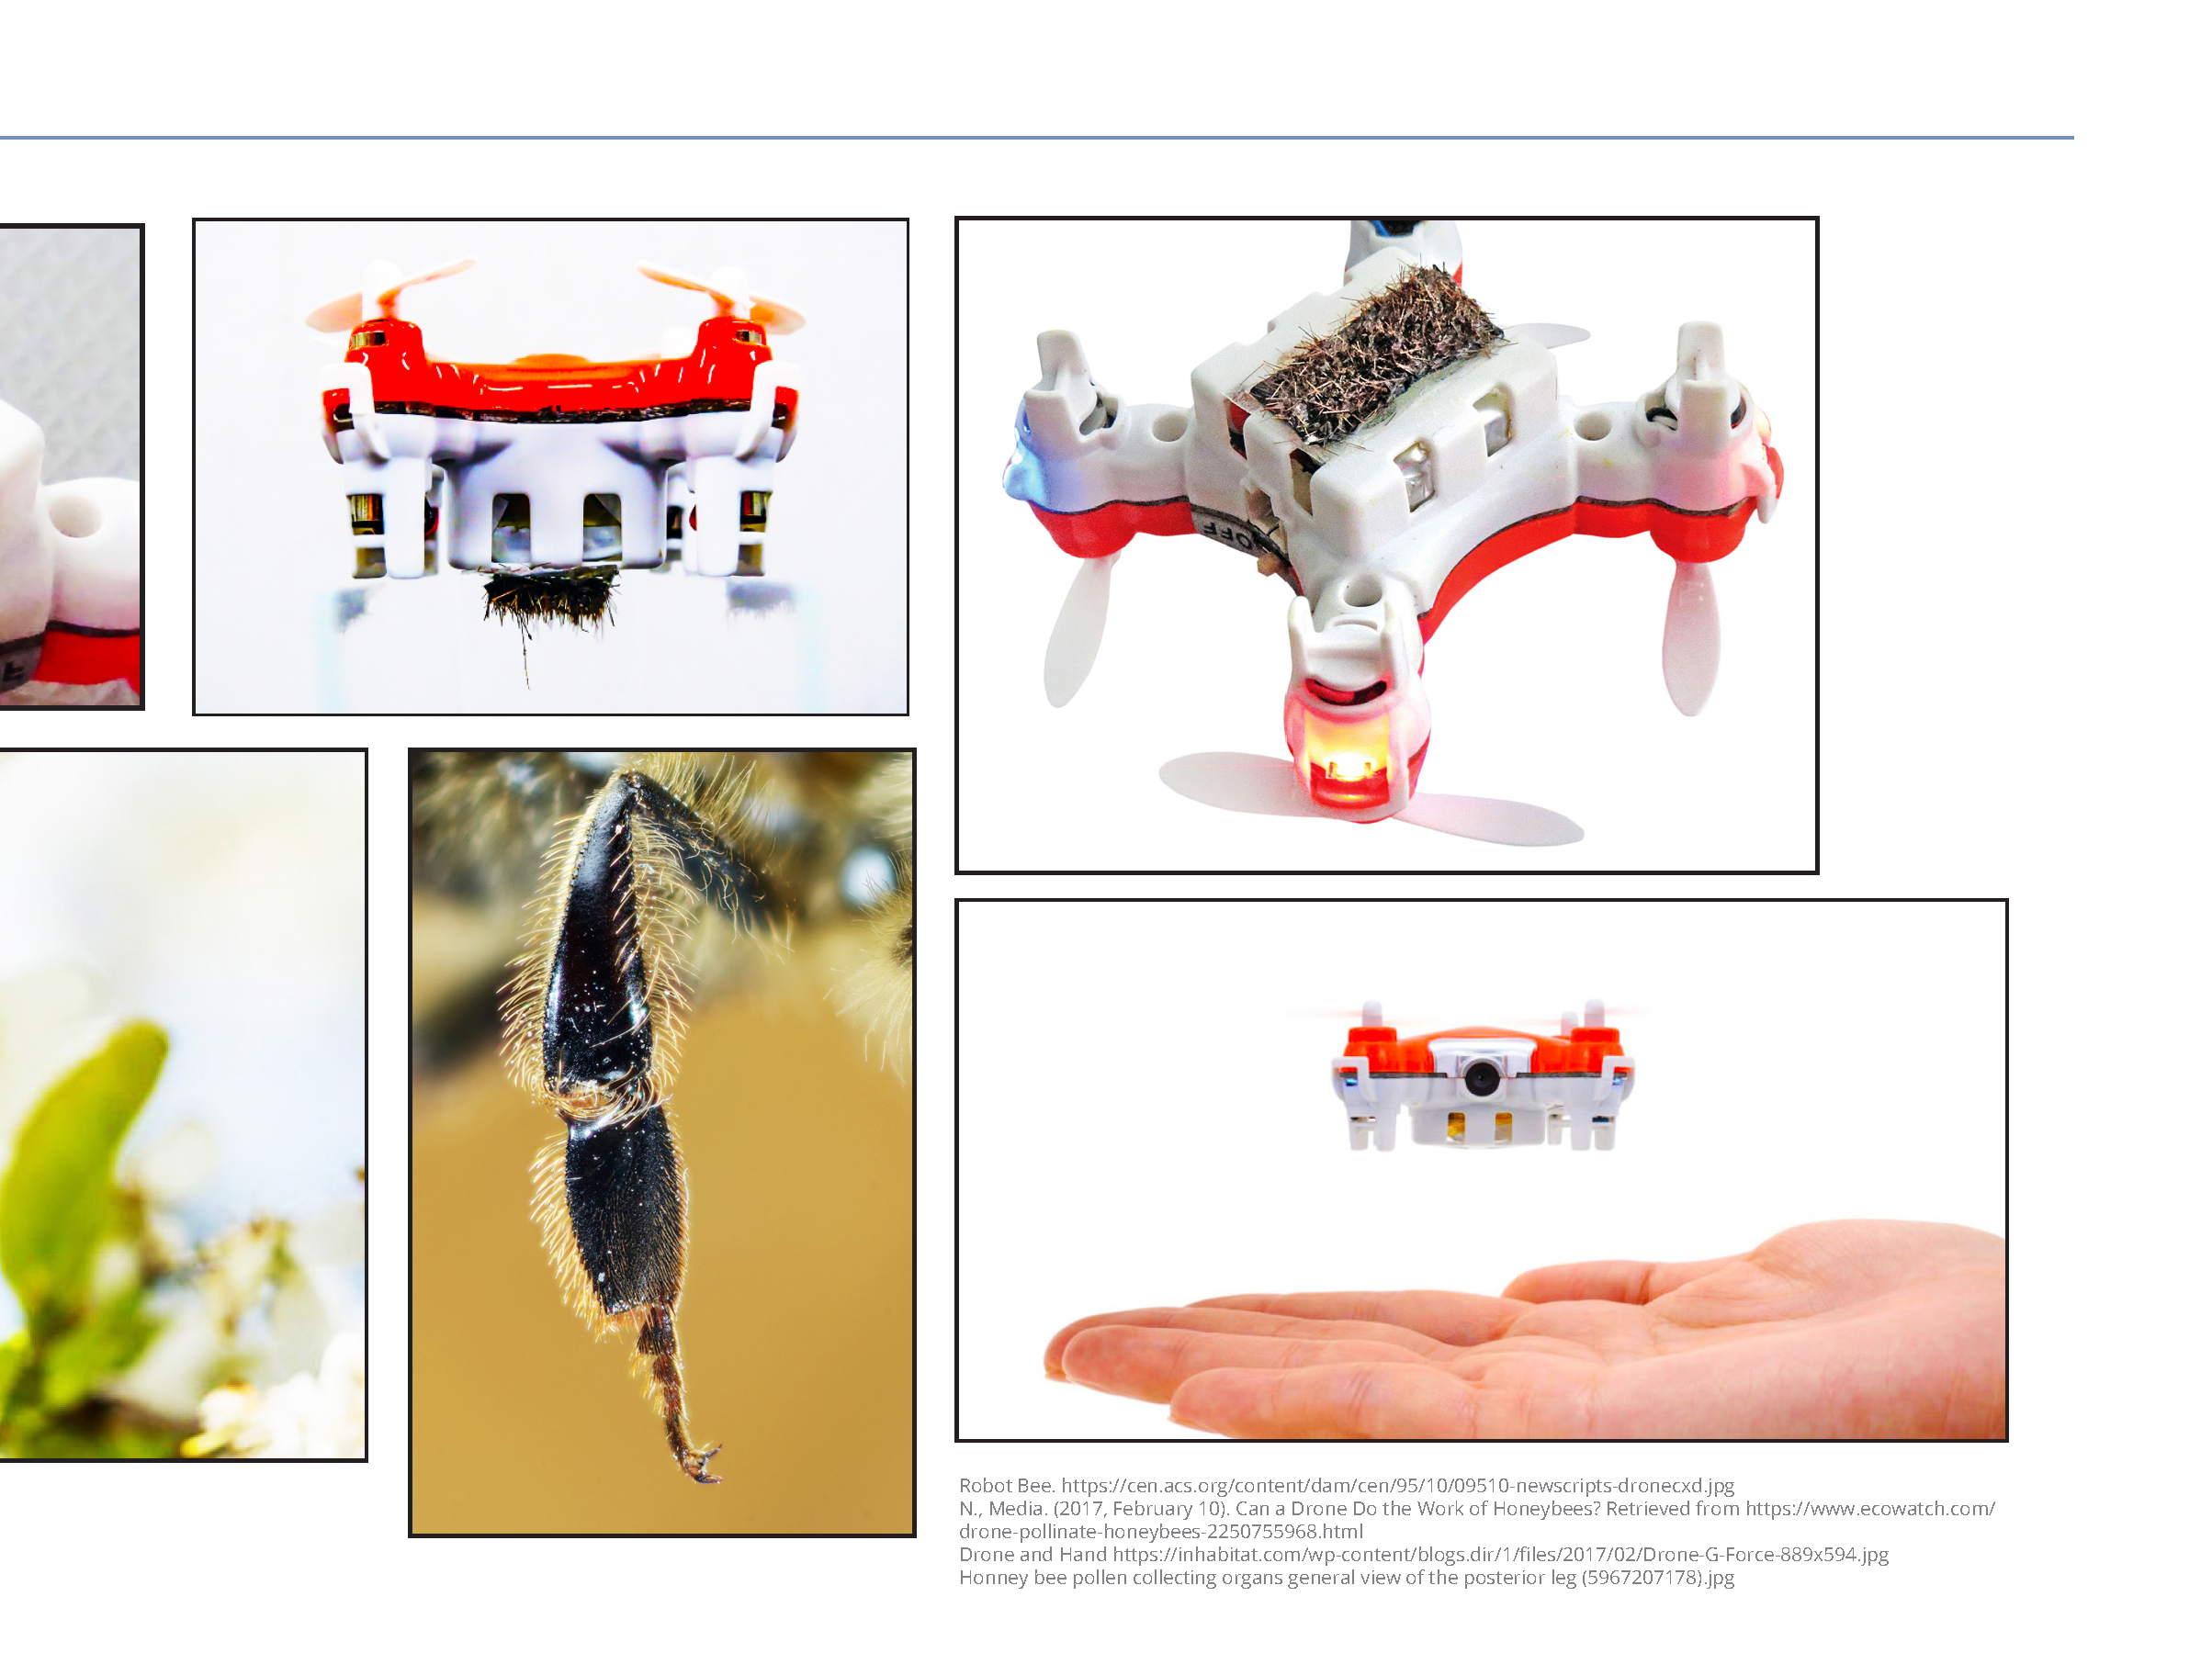 Pollinating Drone Case Study-Pages_Page_19.png